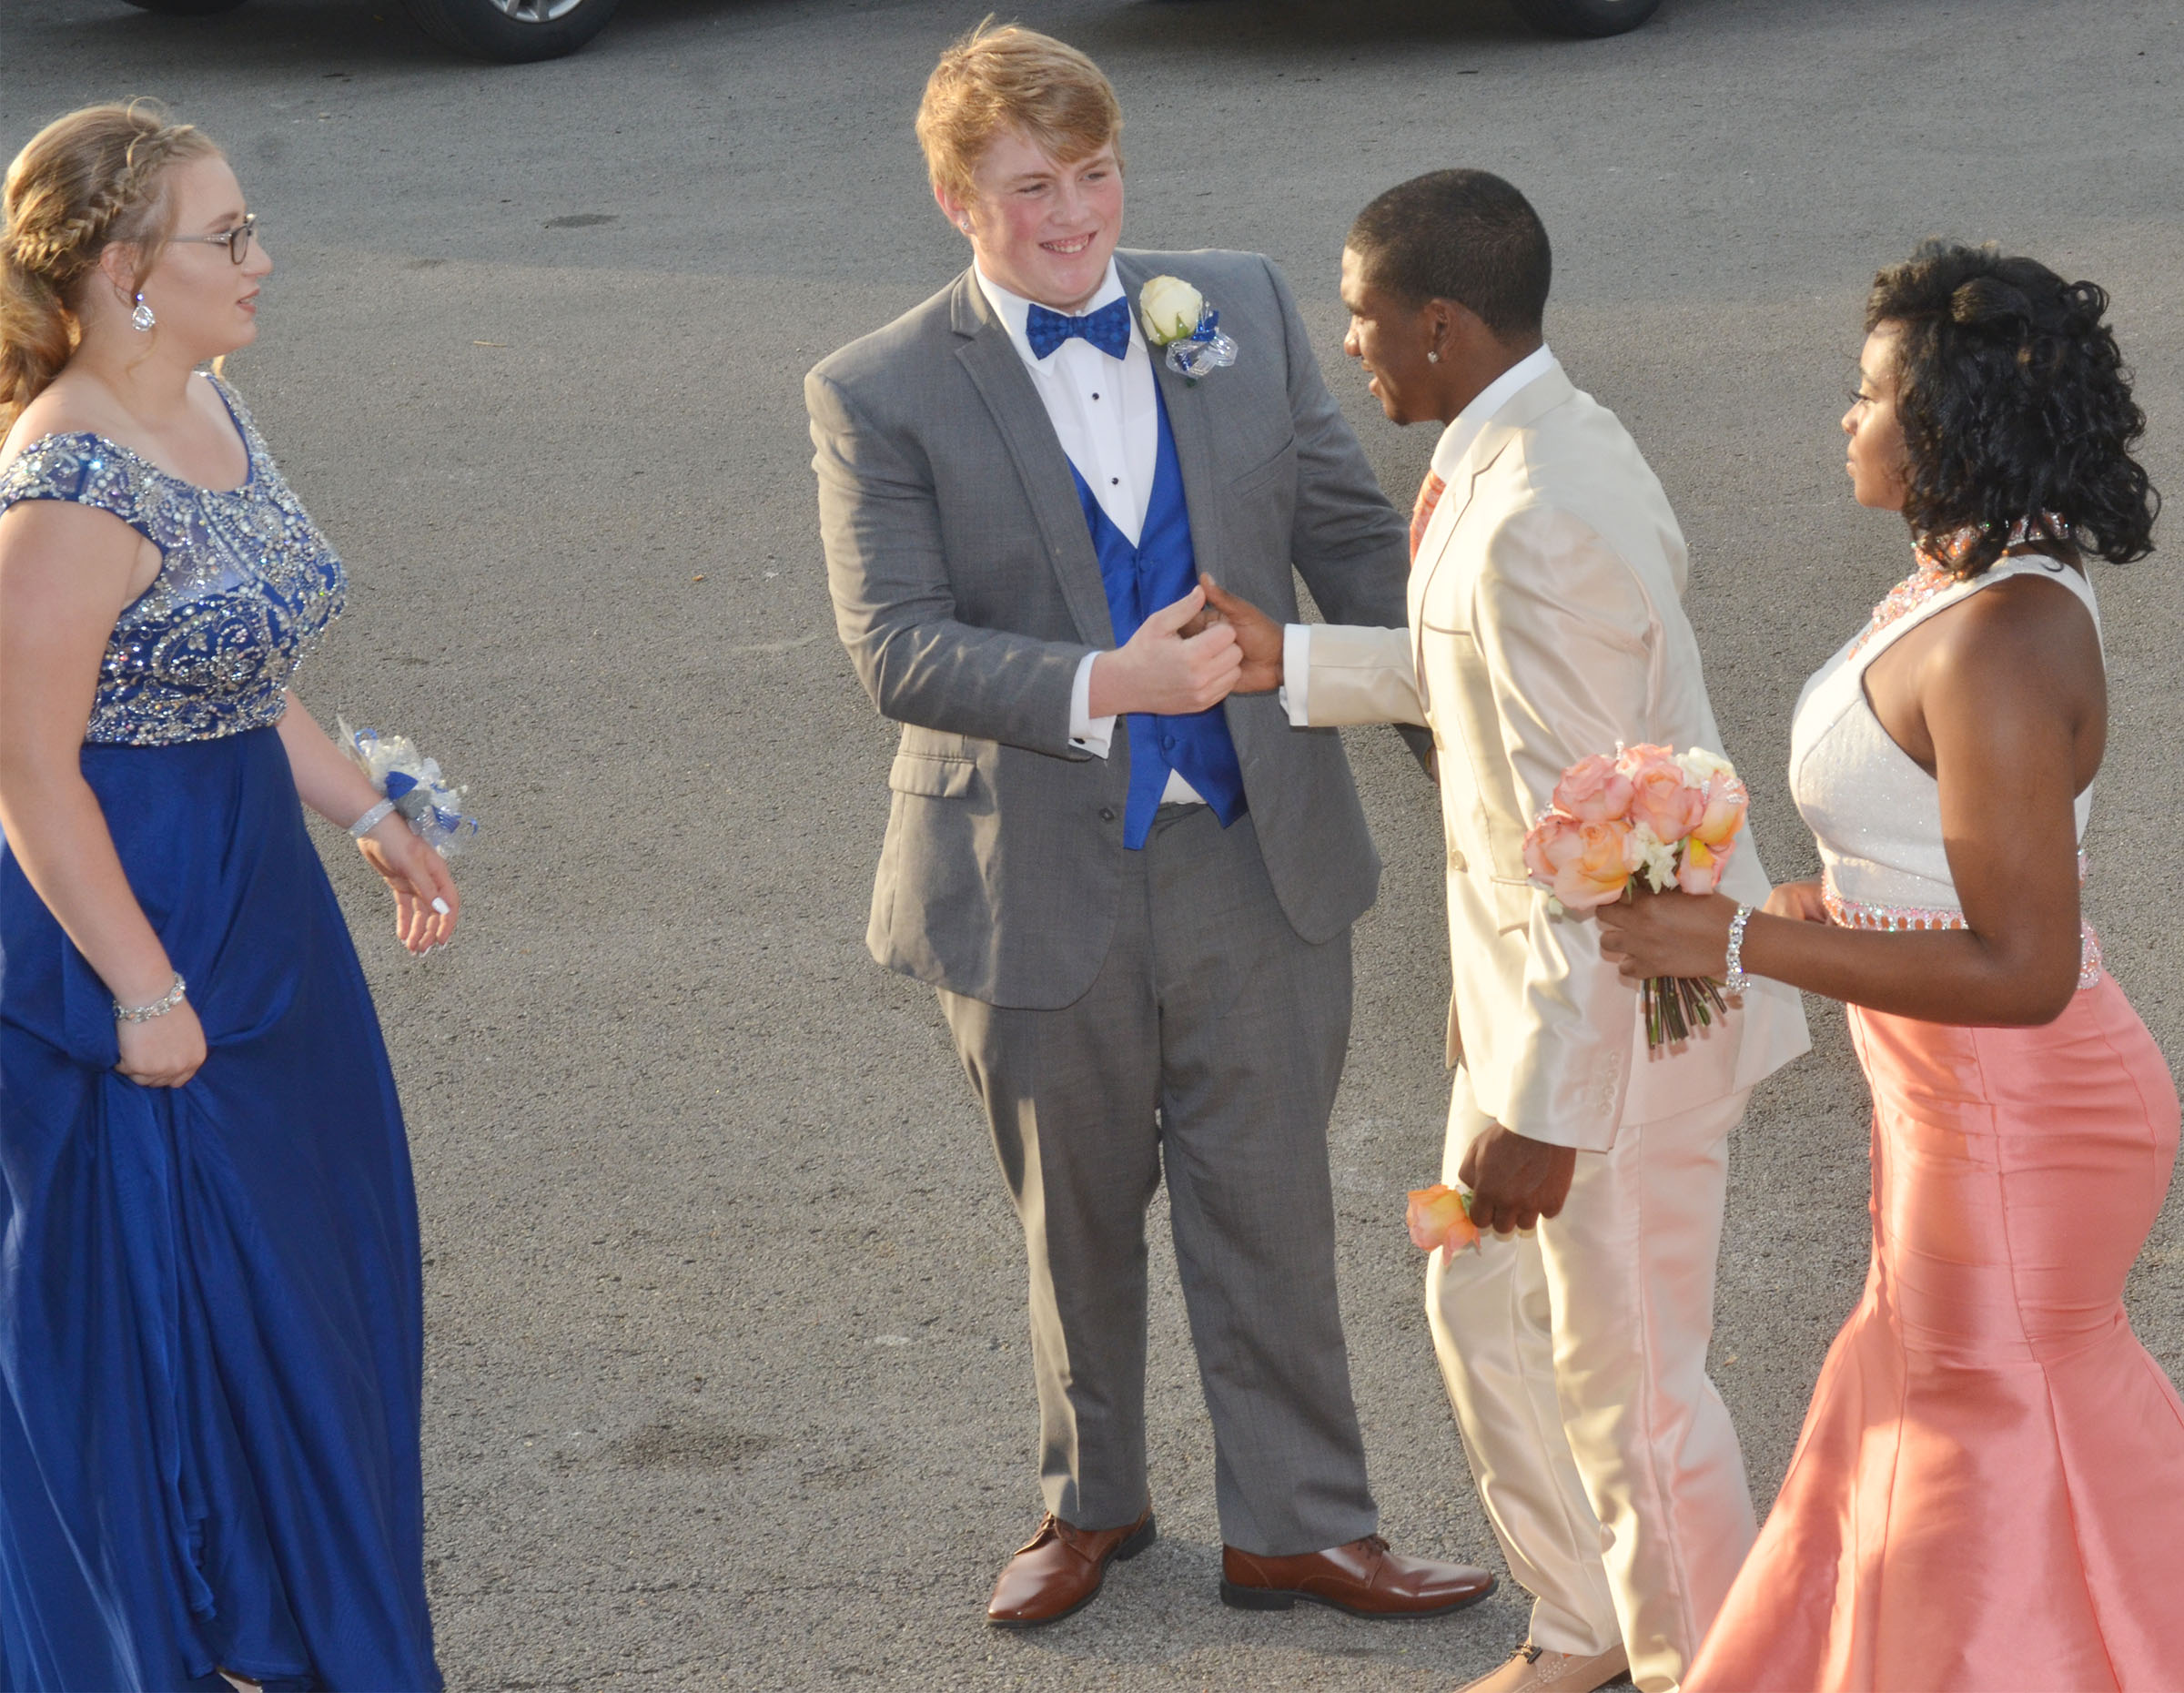 CHS junior Ryan Jeffries greets classmate Tyrion Taylor as they walk into CHS for prom walk. At left is Jeffries's date, freshman Samantha Johnson, and at right is Taylor's date Vonnea Smith, also a junior.